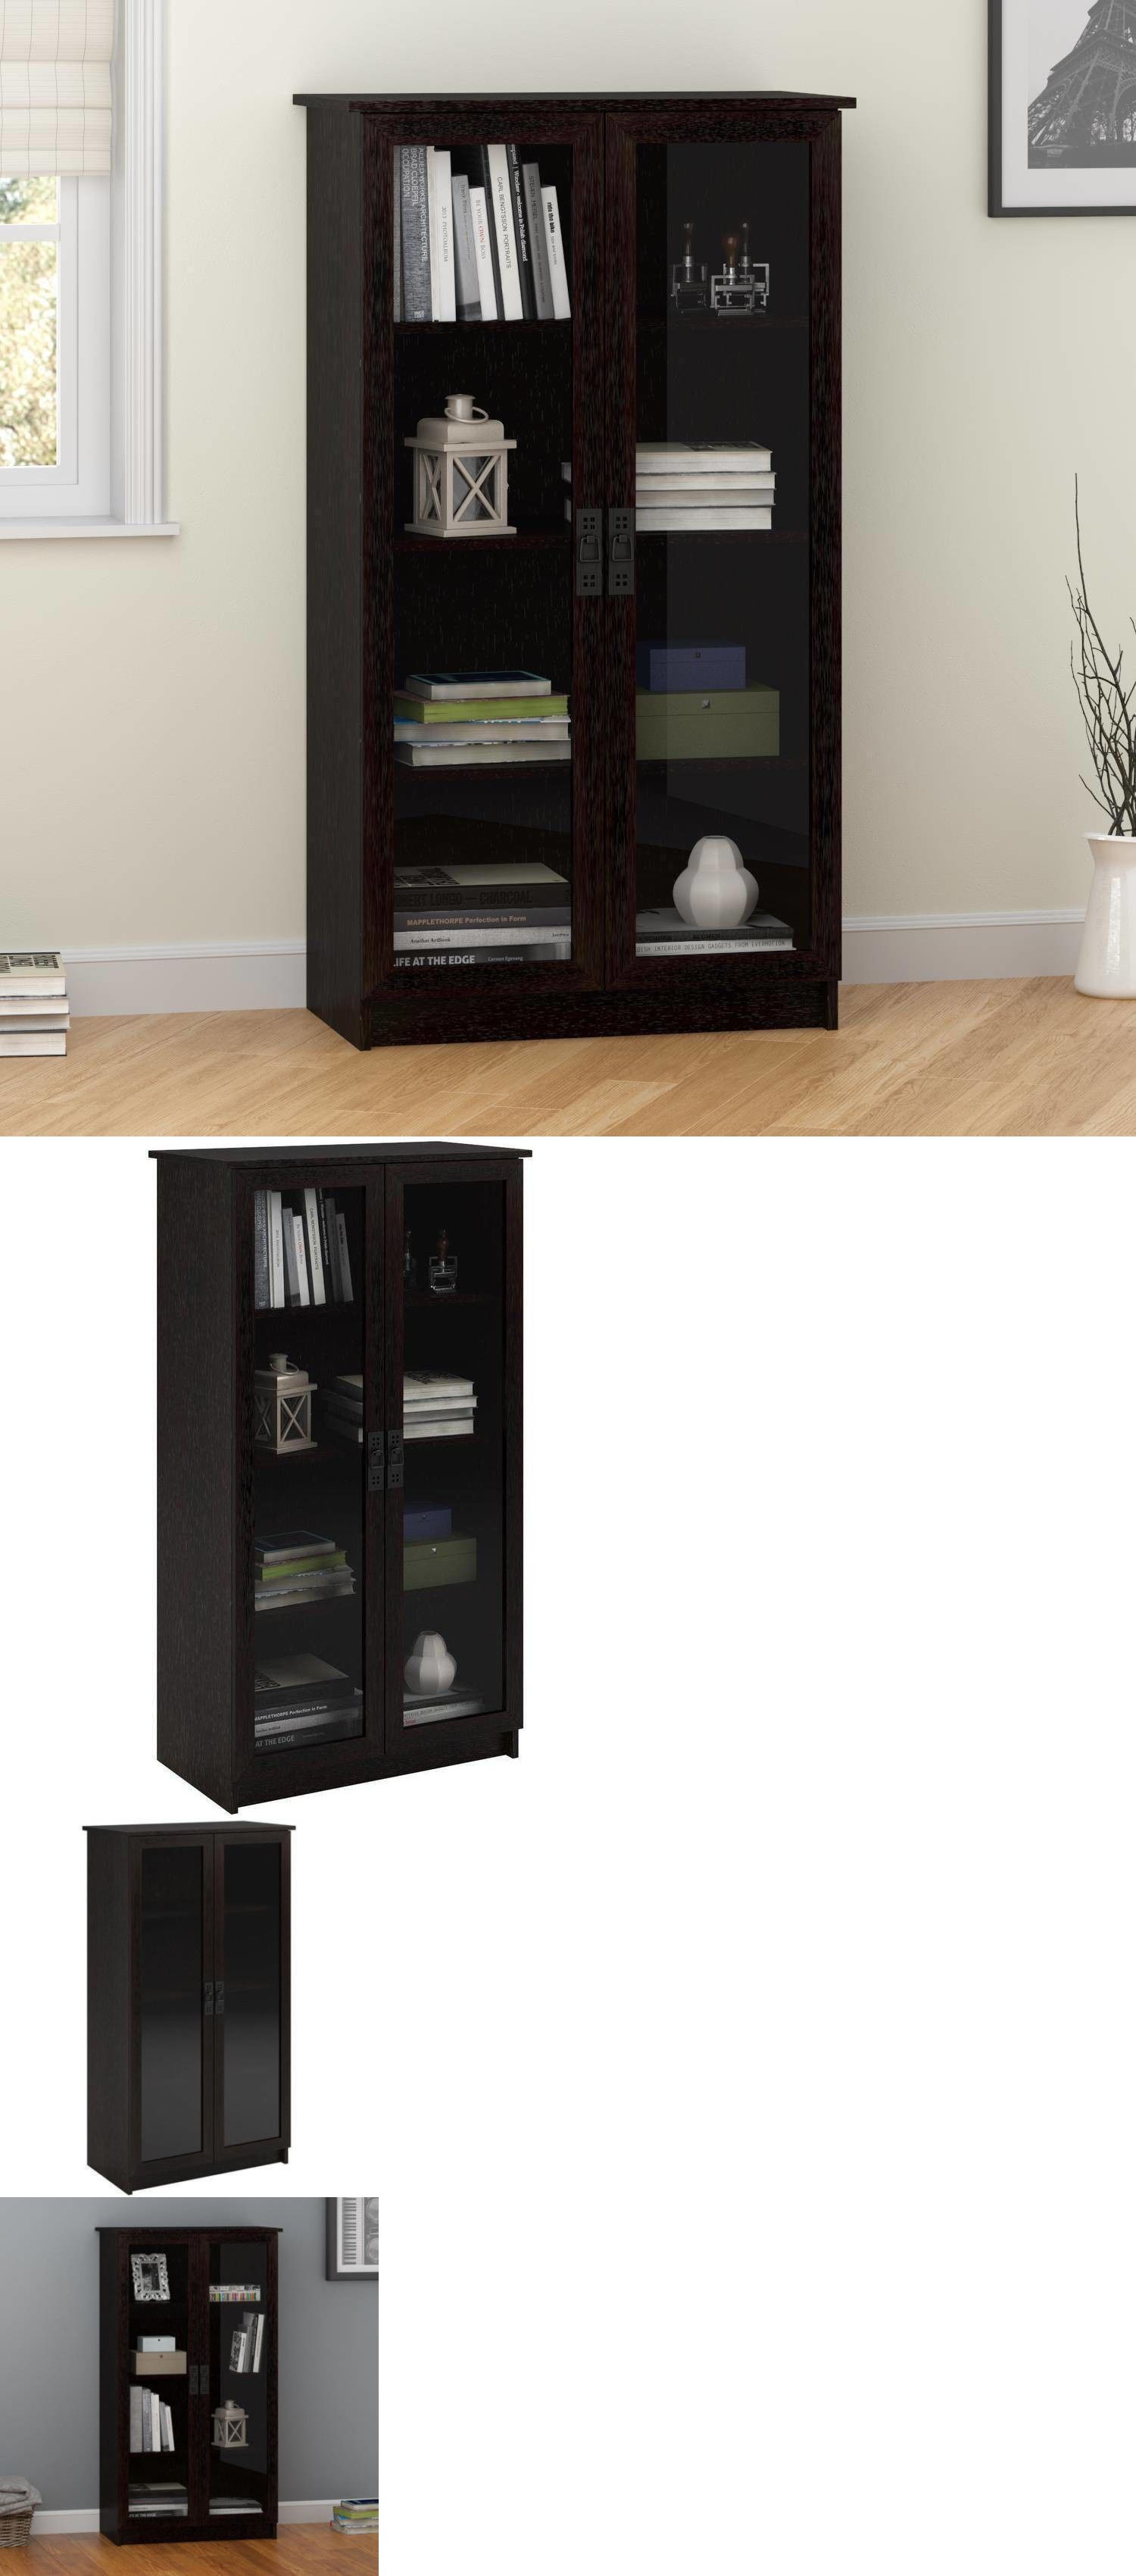 Bookcases 3199 Storage Cabinet With 4 Shelves 2 Glass Doors Bookcase Black Cupboard Bookshelf BUY IT NOW ONLY 16778 On EBay